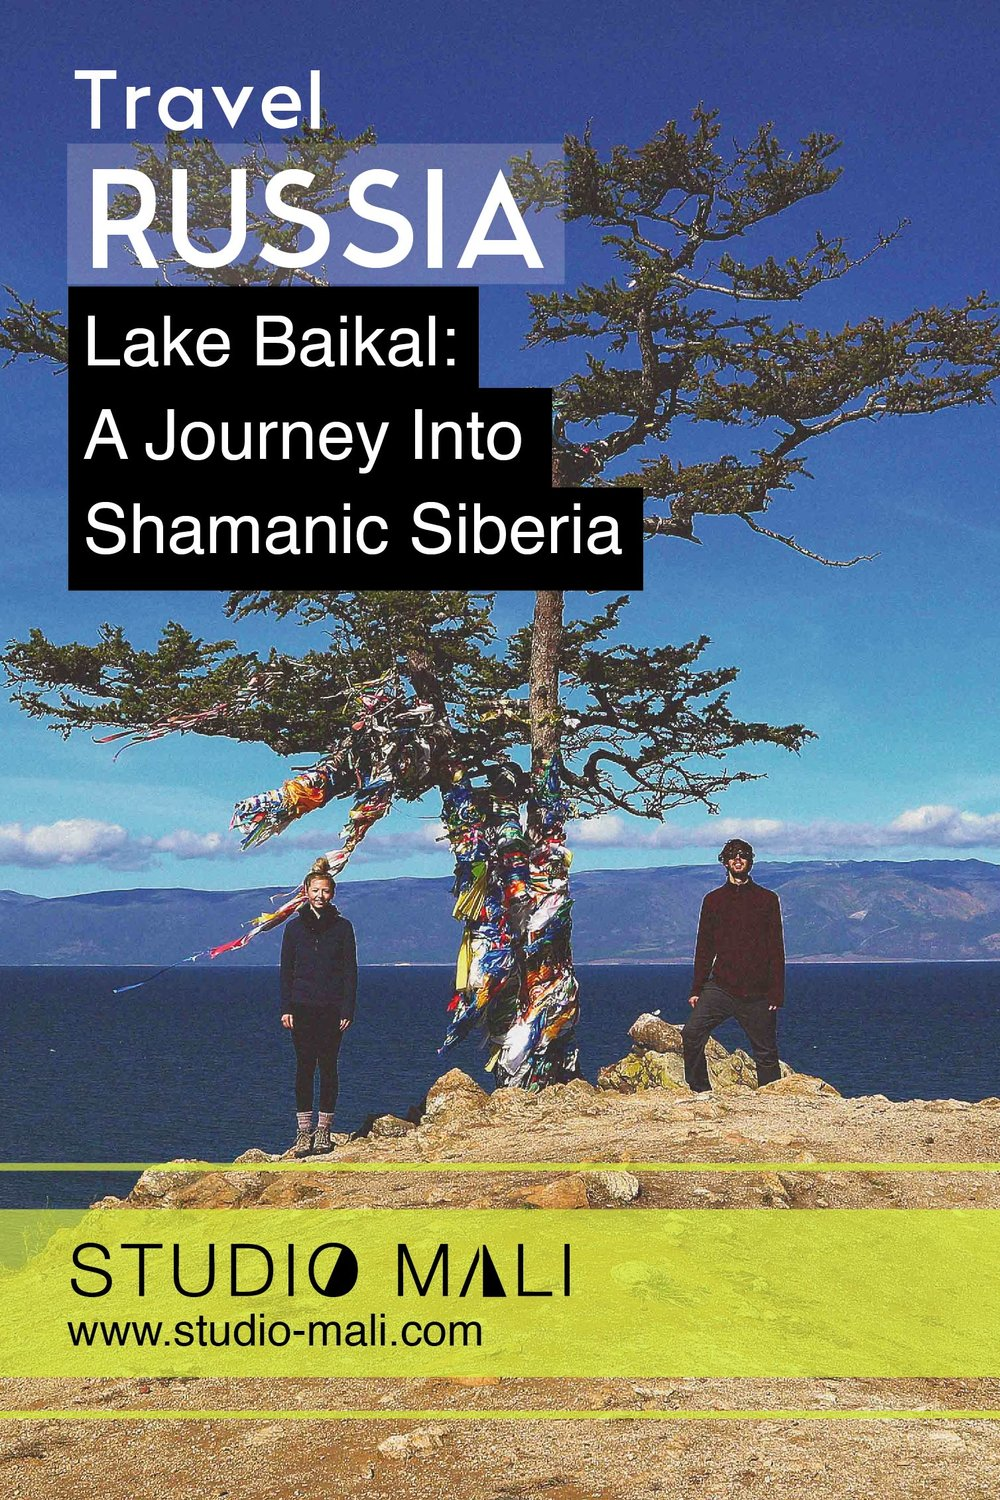 Russia - Lake Baikal, A Journey Into Shamanic Siberia, by Studio Mali.jpg